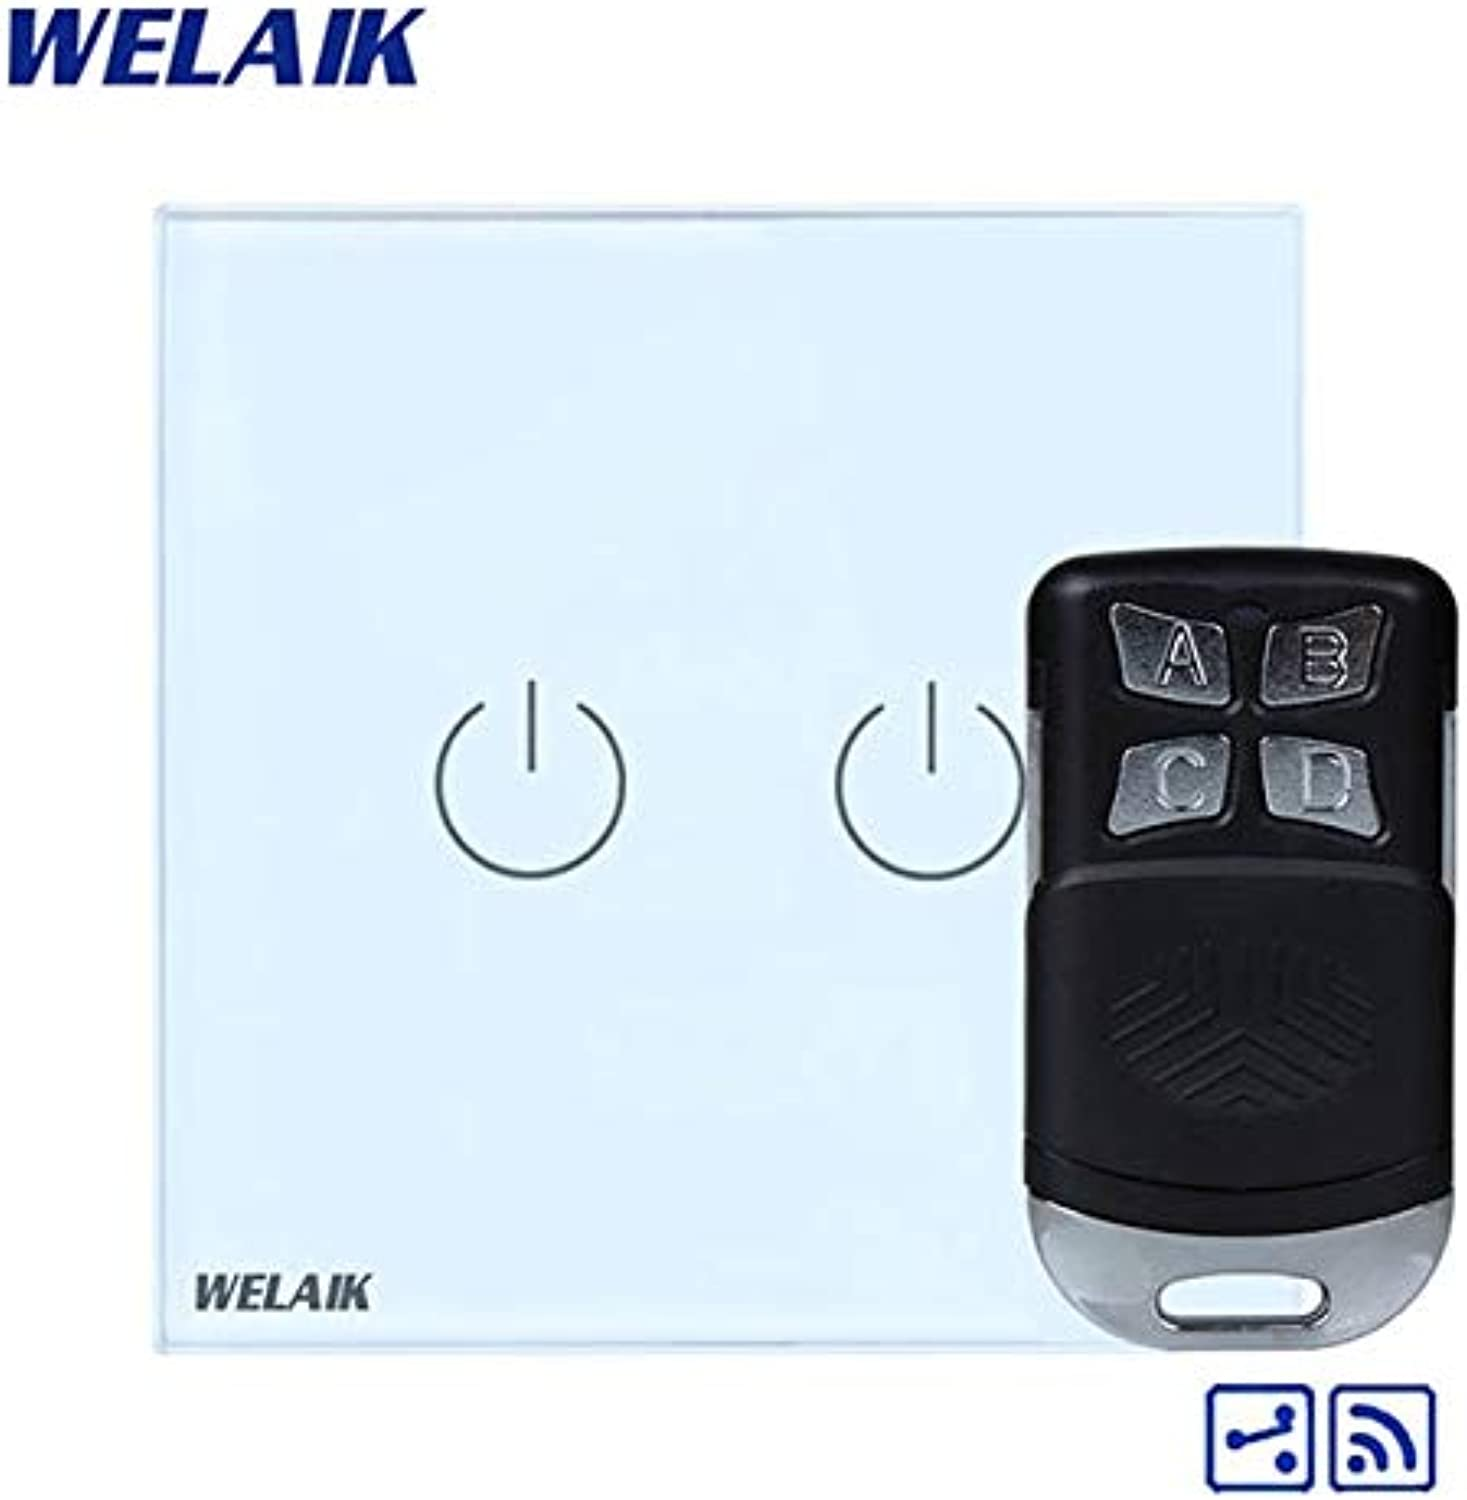 WELAIK Glass Panel Switch White Wall Switch EU Remote Control Touch Switch Screen Light Switch 2gang2way AC110250V A1924W BR01  (color  White)